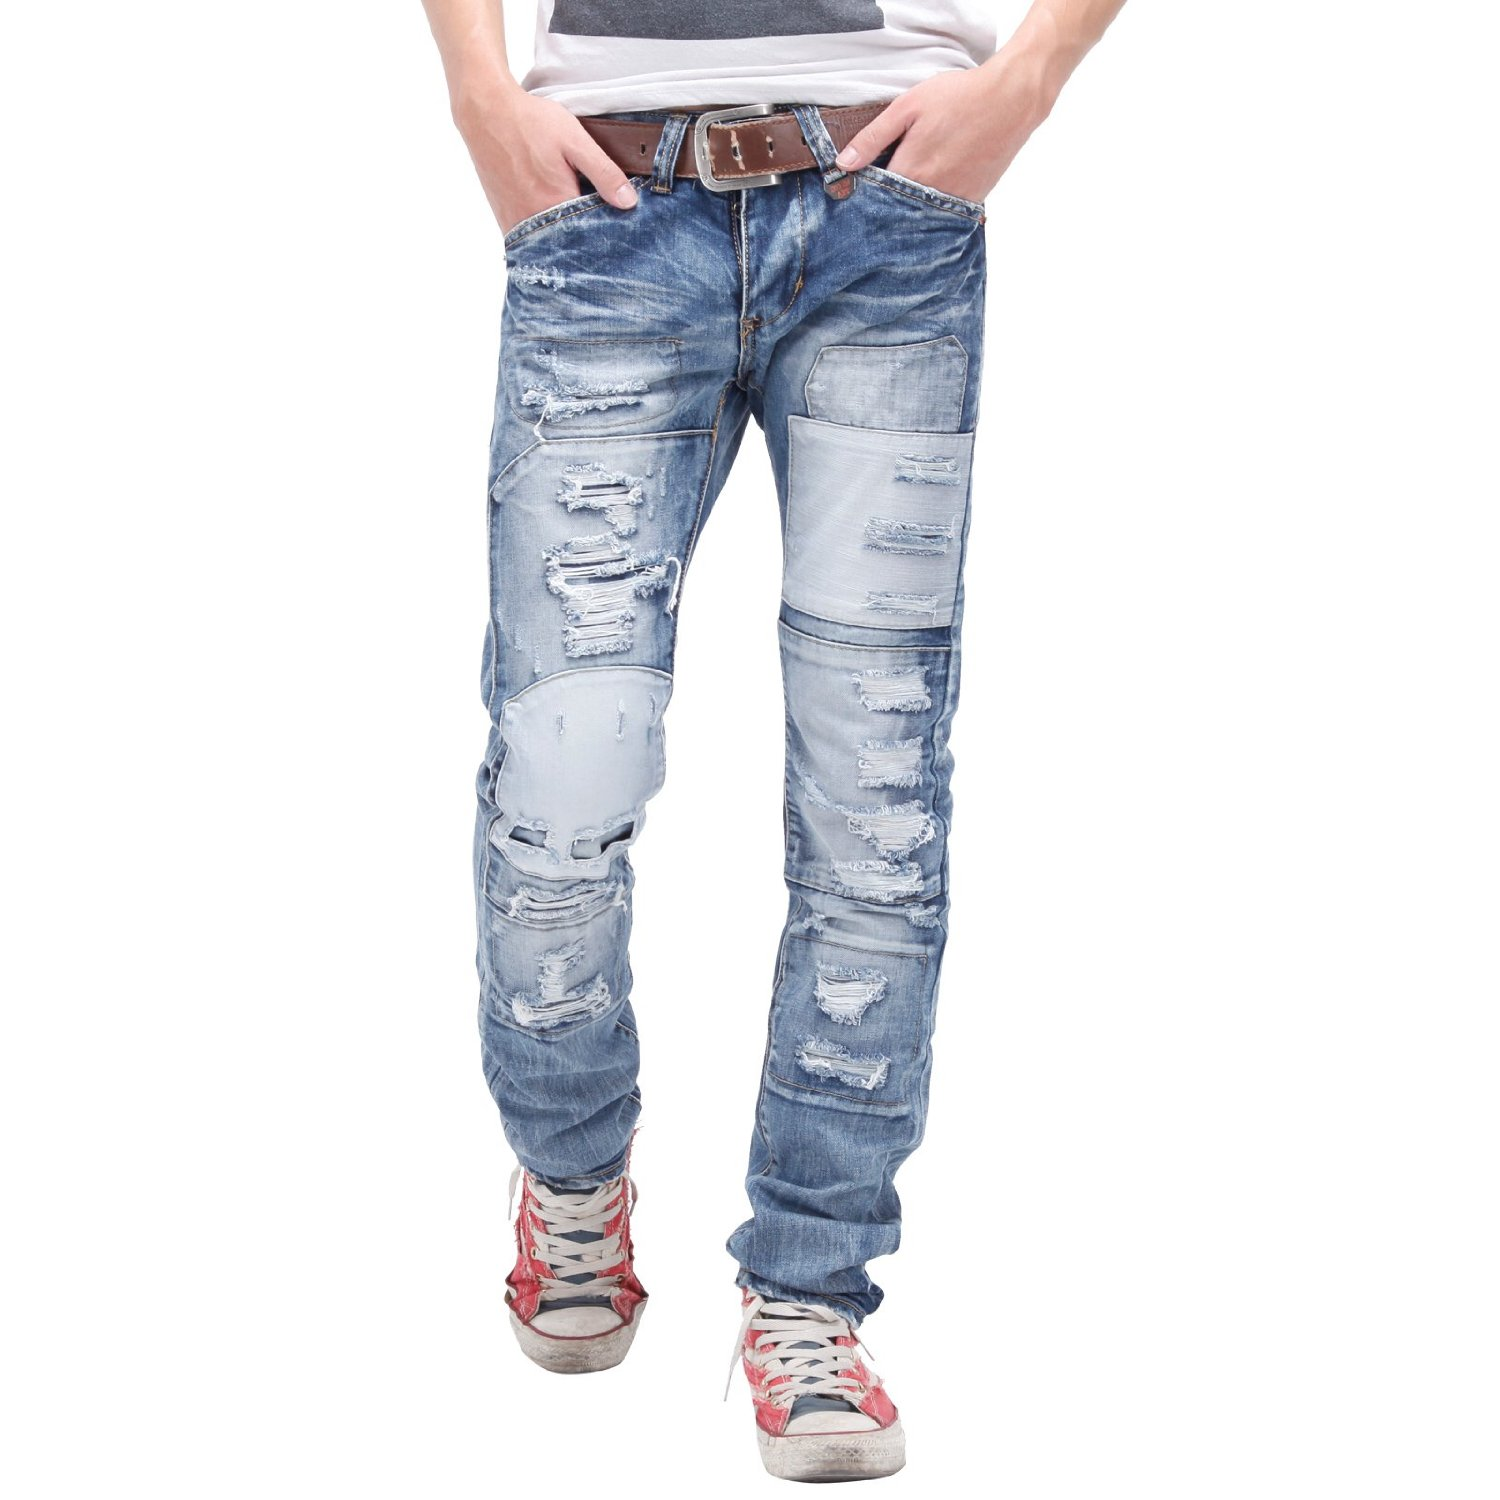 Ripped jeans for men photo